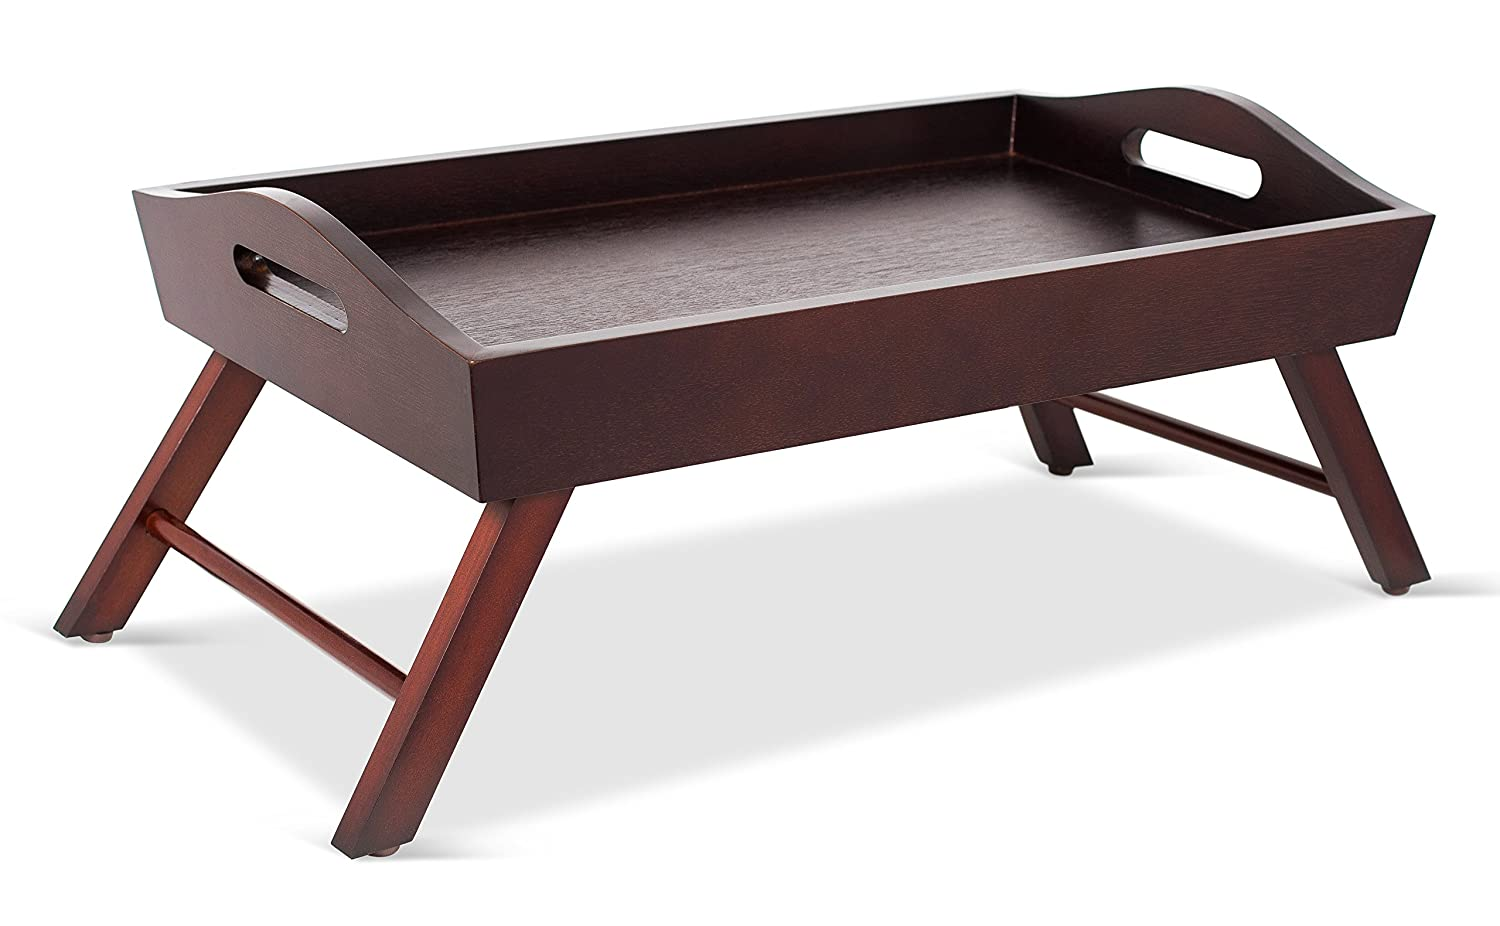 BirdRock Home Wood Bed Tray with Folding Legs | Wide Breakfast Serving Tray Lap Desk with Sides and Handles | Walnut 10604